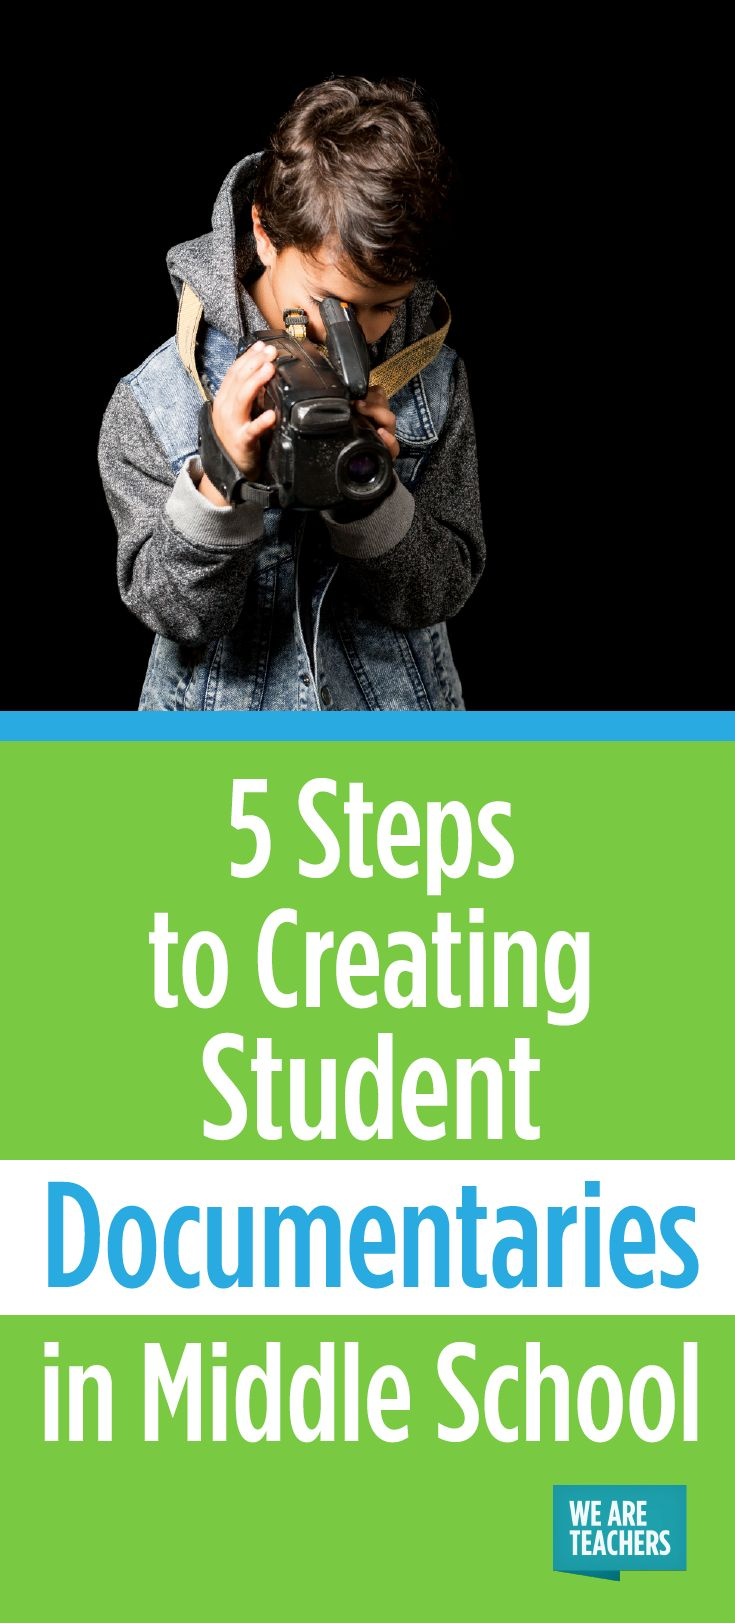 5 Steps to Creating Student Documentaries in Middle School